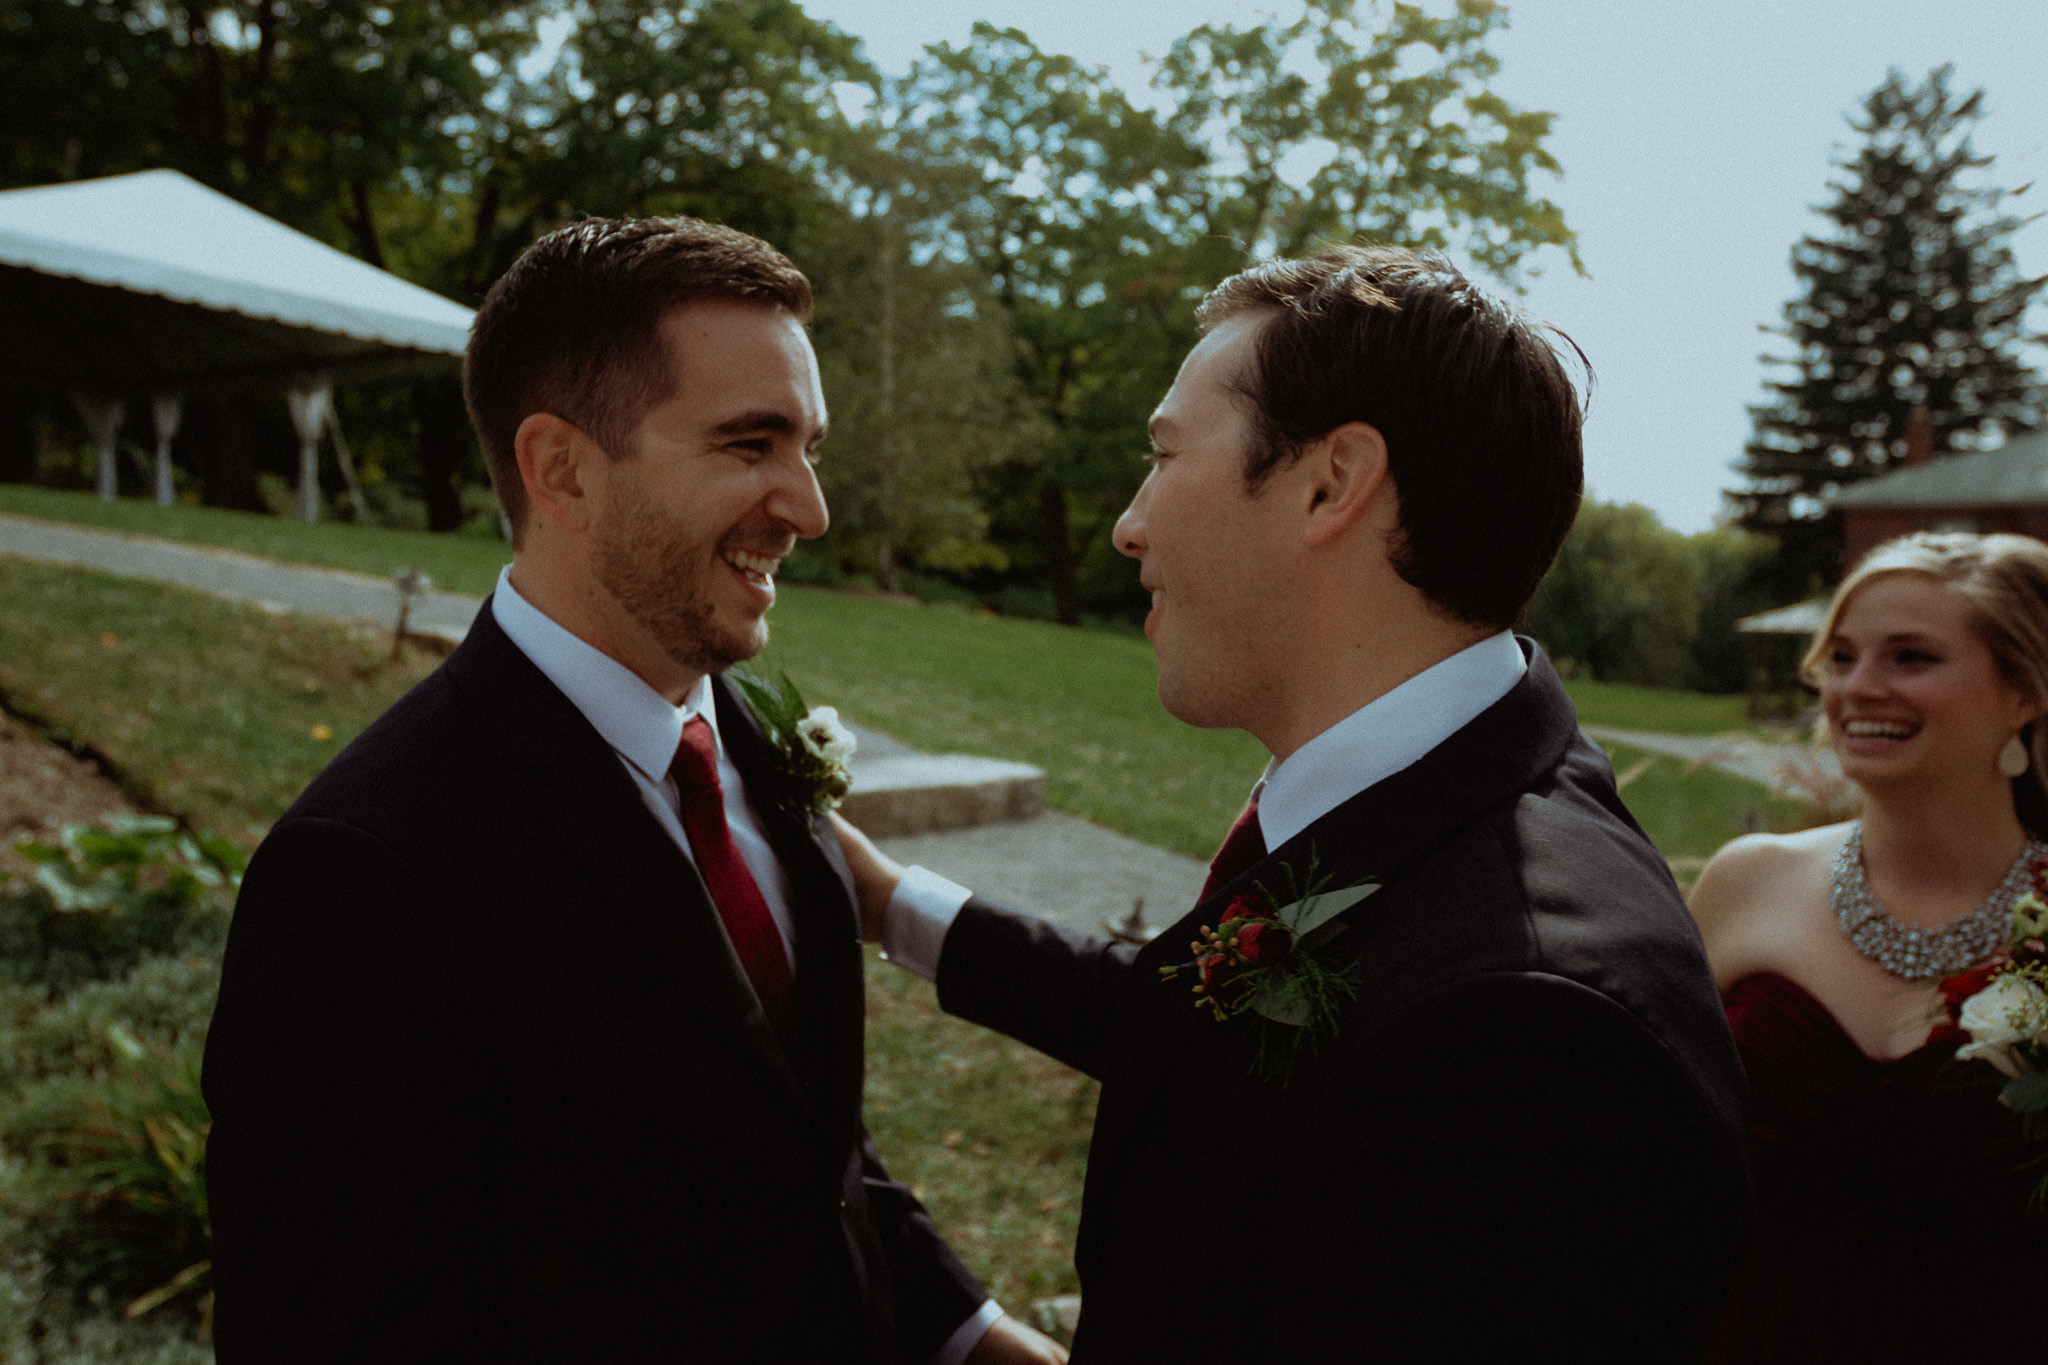 groom and best man after wedding ceremony